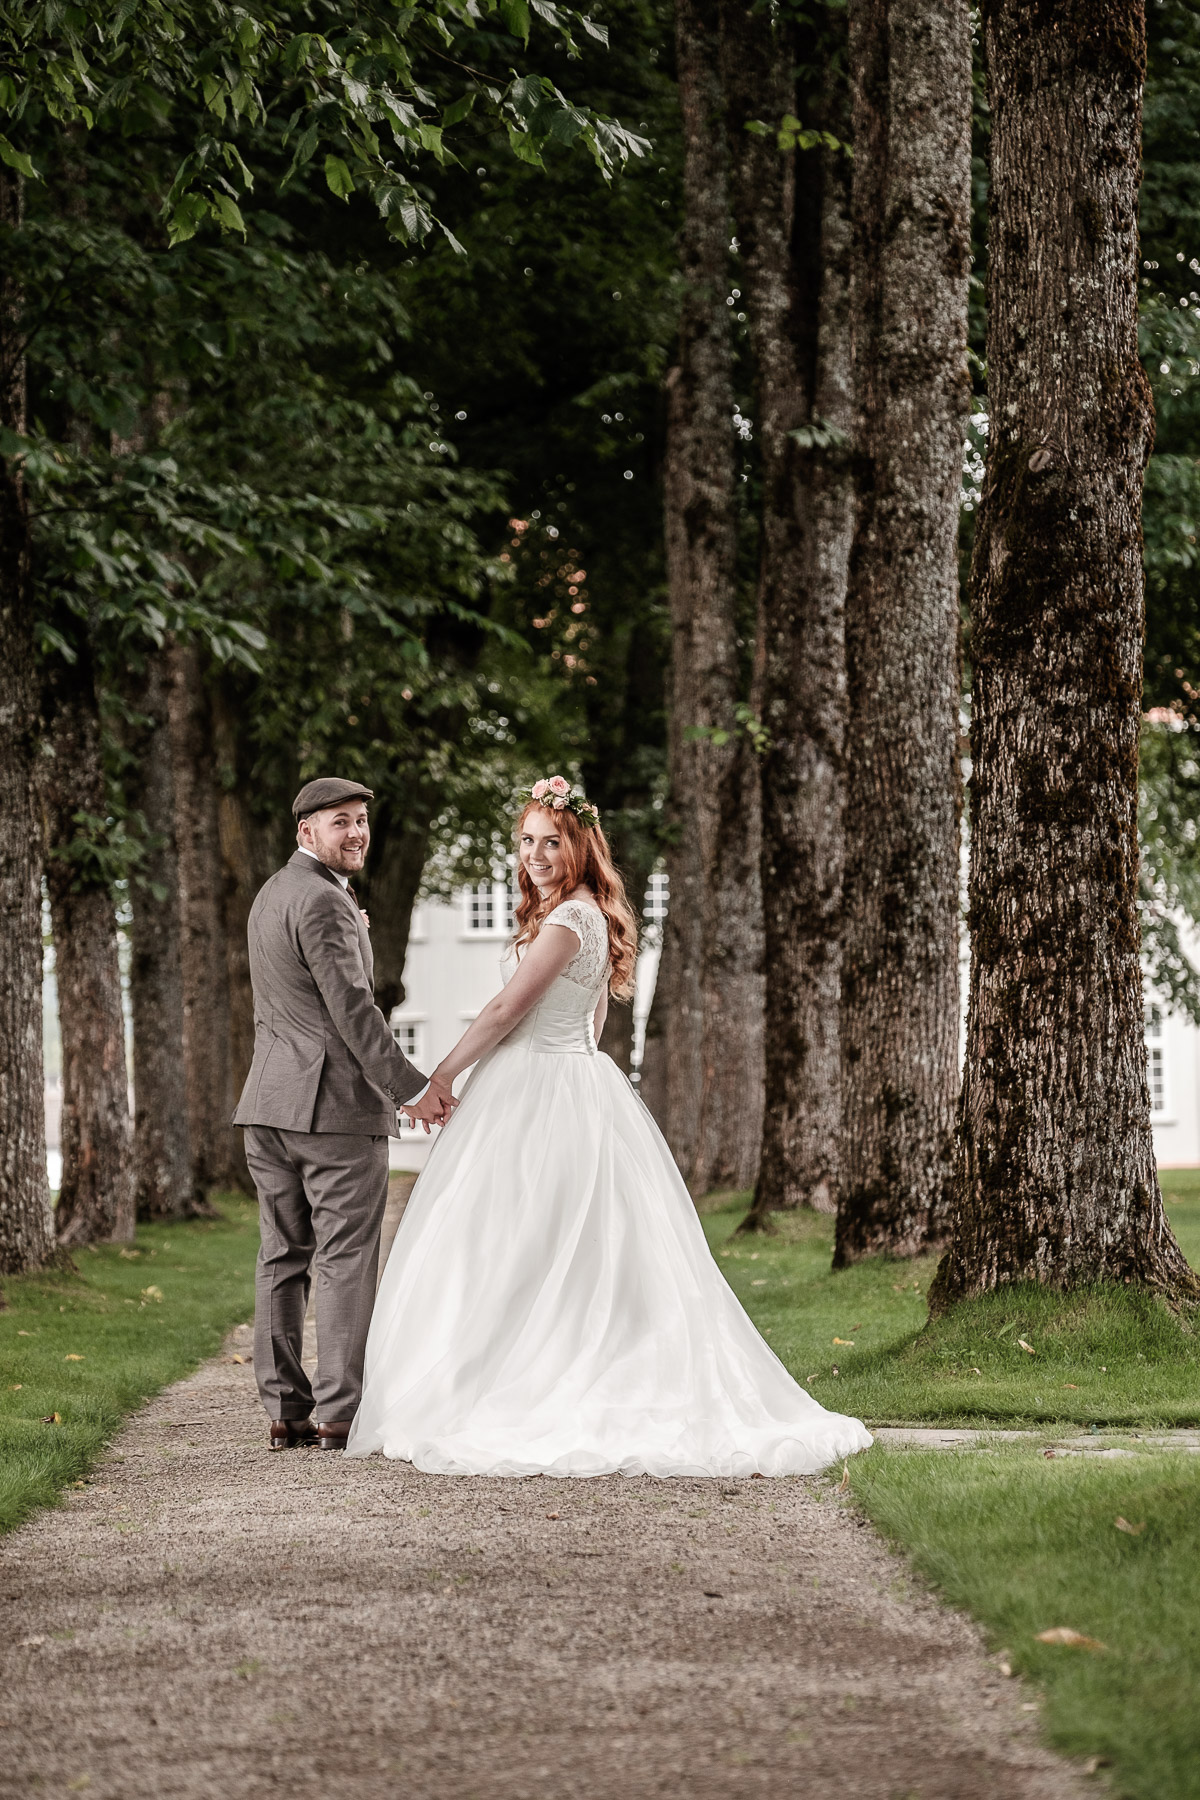 Click to enlarge image elise-christoffer-eidsvoll-ottossonphoto-1023.jpg